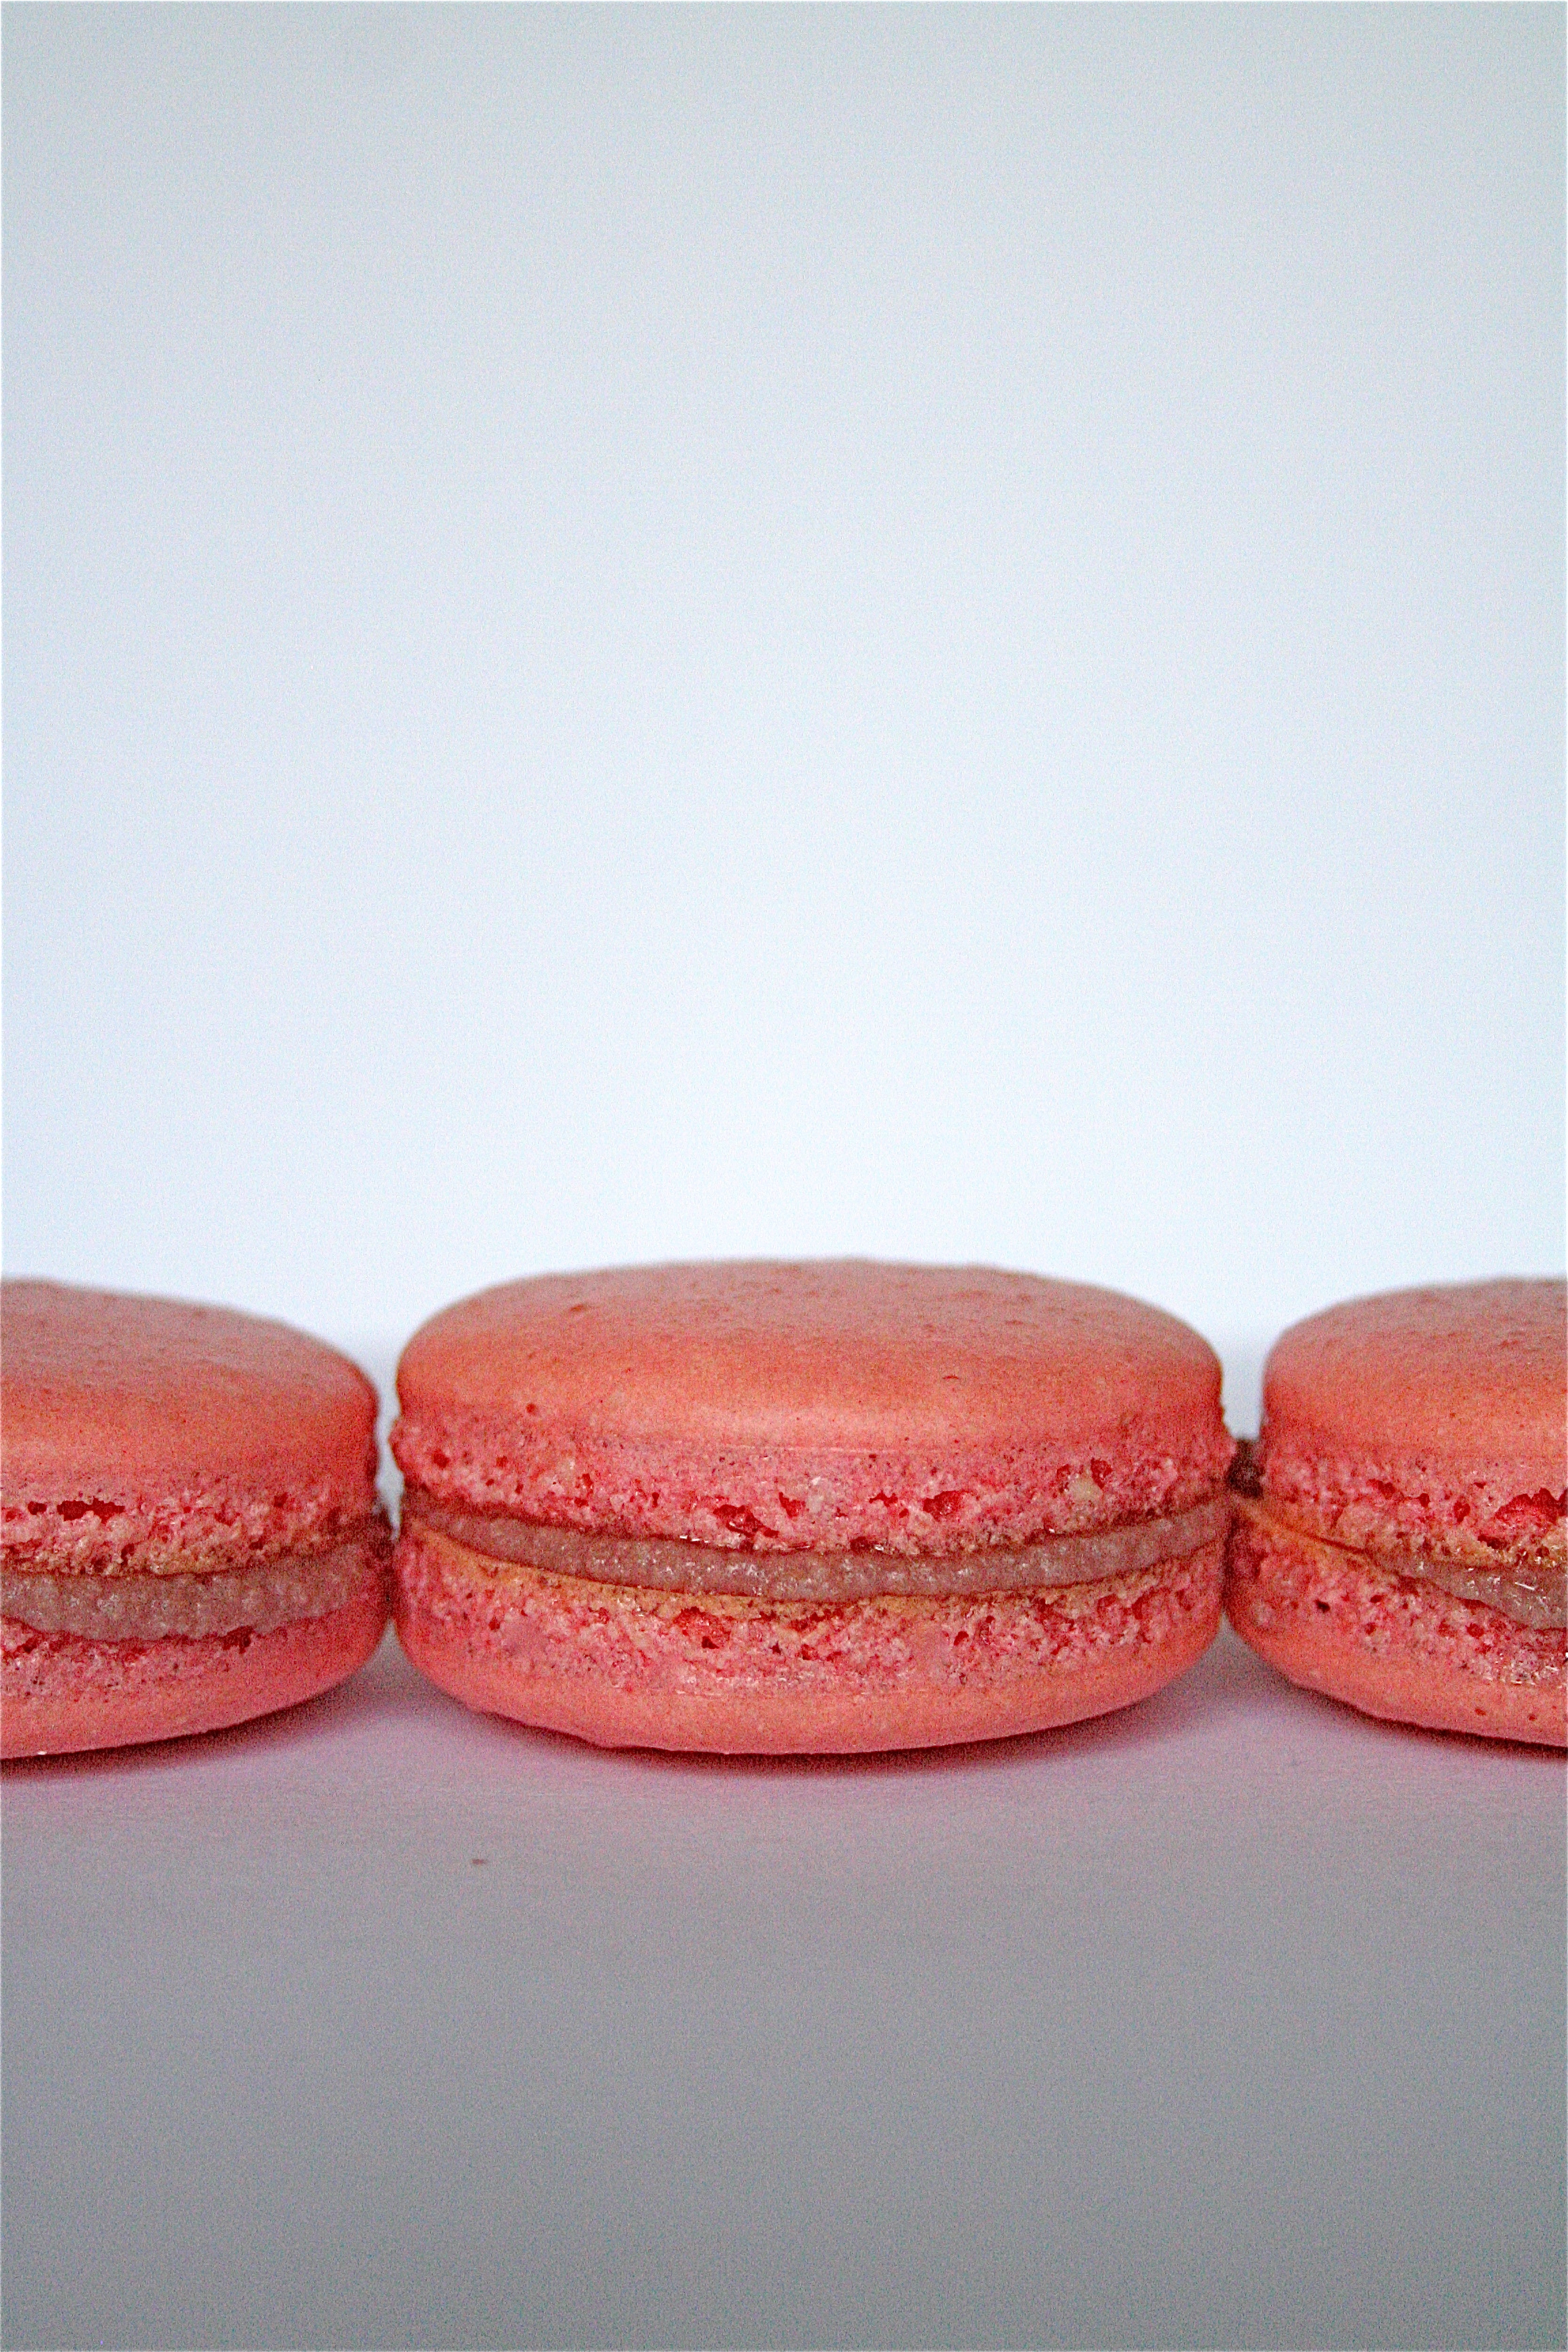 Raspberry Mascarpone Macarons | The Curvy Carrot